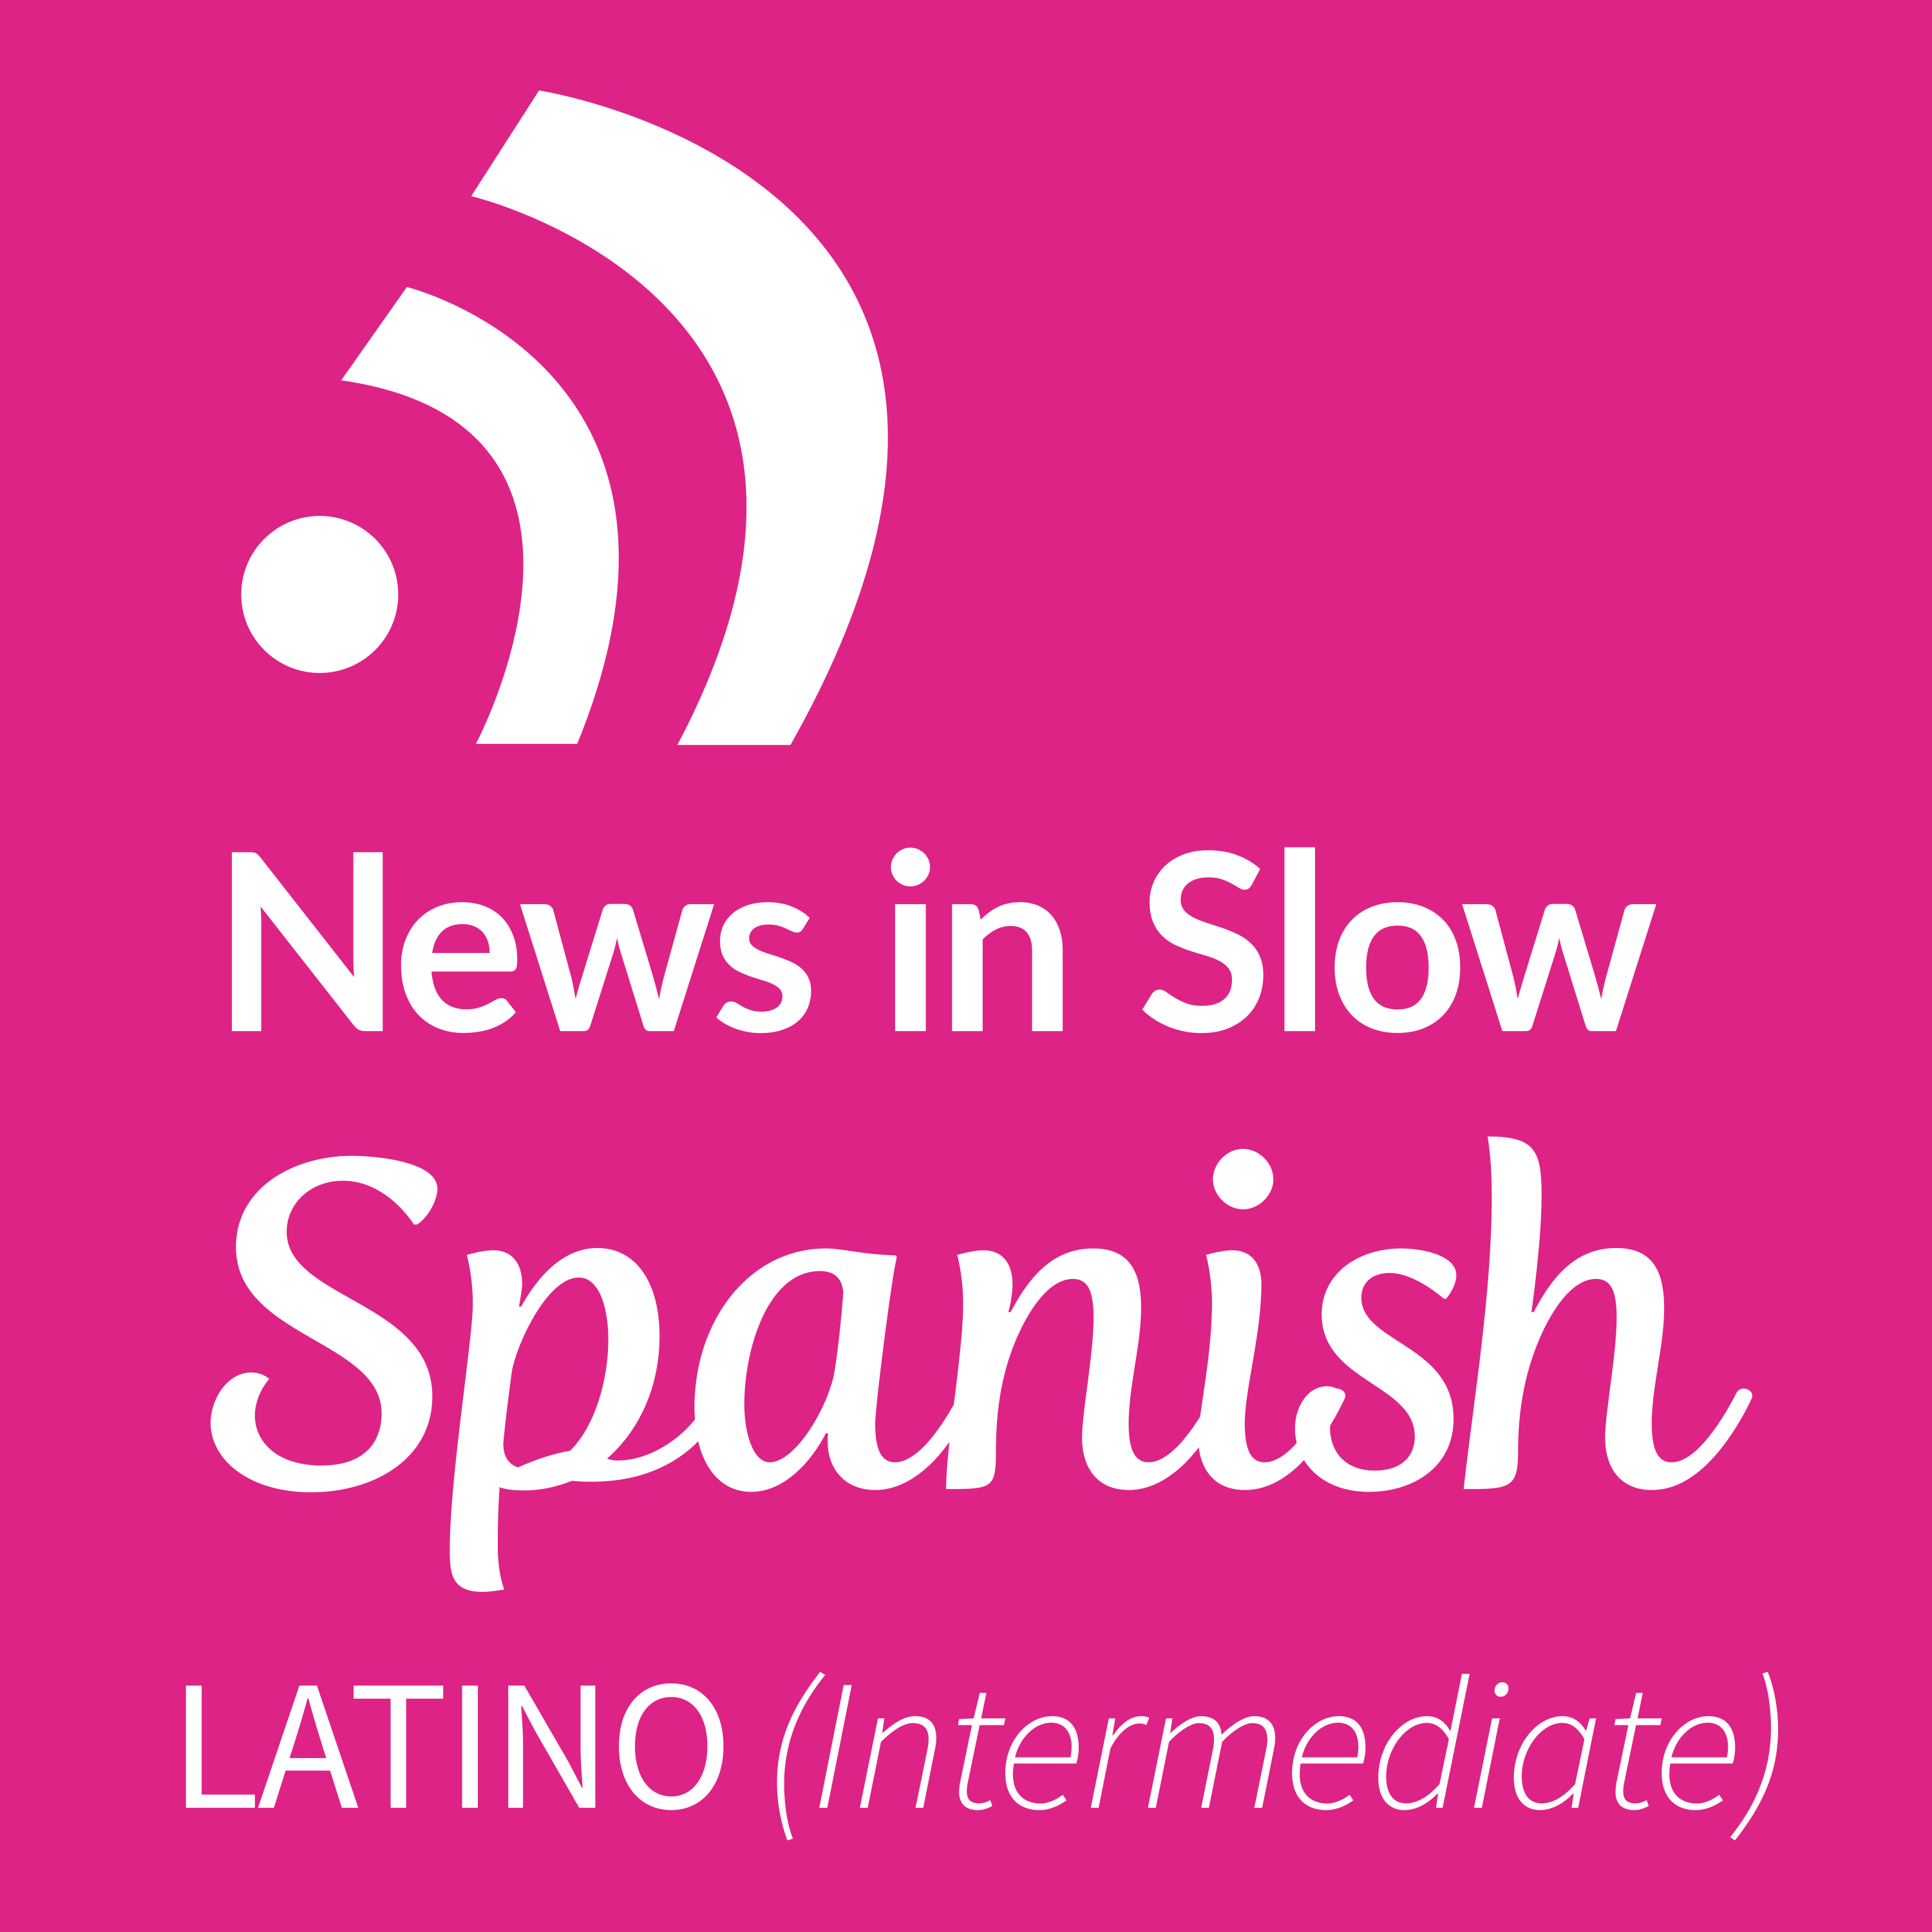 News in Slow Spanish Latino - # 158 - Language learning in the context of current events